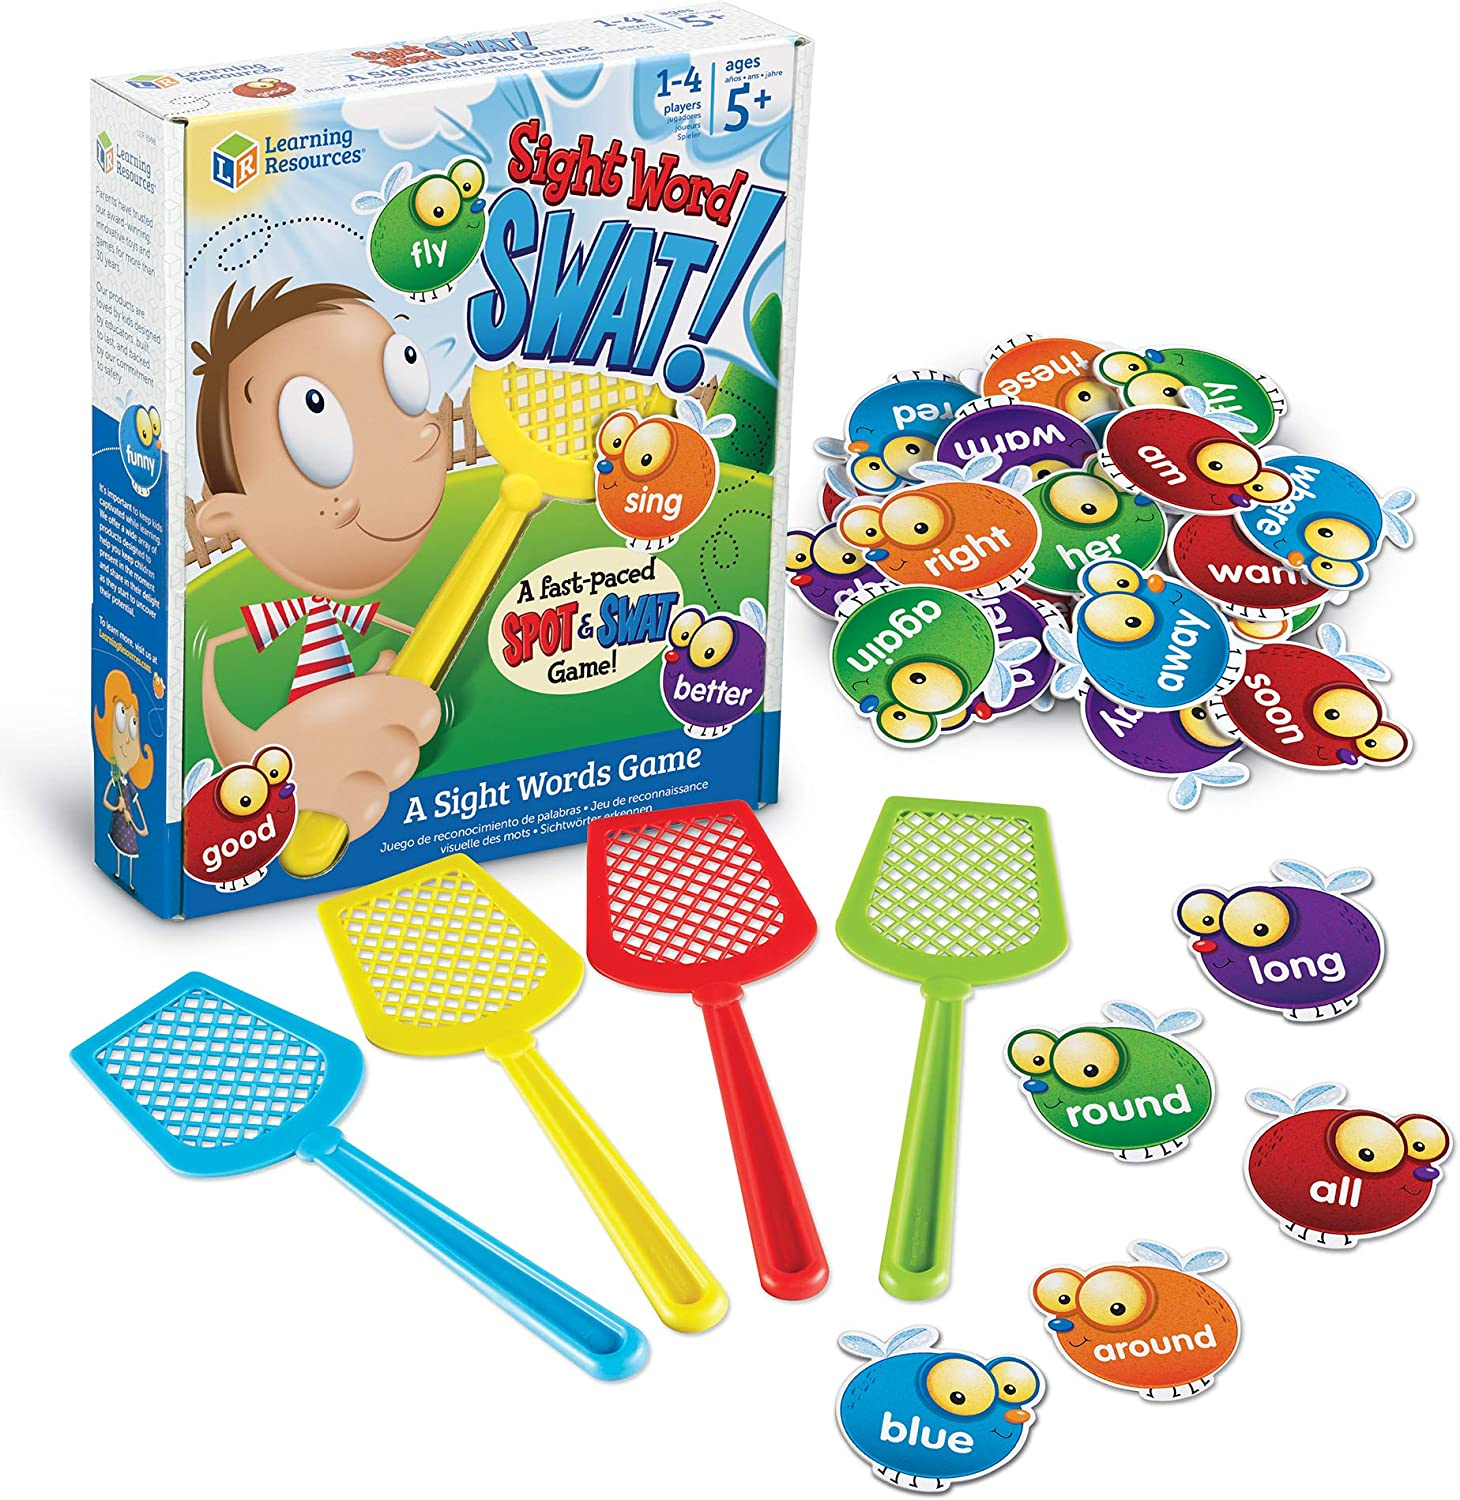 Learning Resources Sight Word Swat a Sight Word Game, Home School, Visual, Tactile and Auditory Learning, Phonics Games, 114 Pieces, Ages 5+: Toys & Games